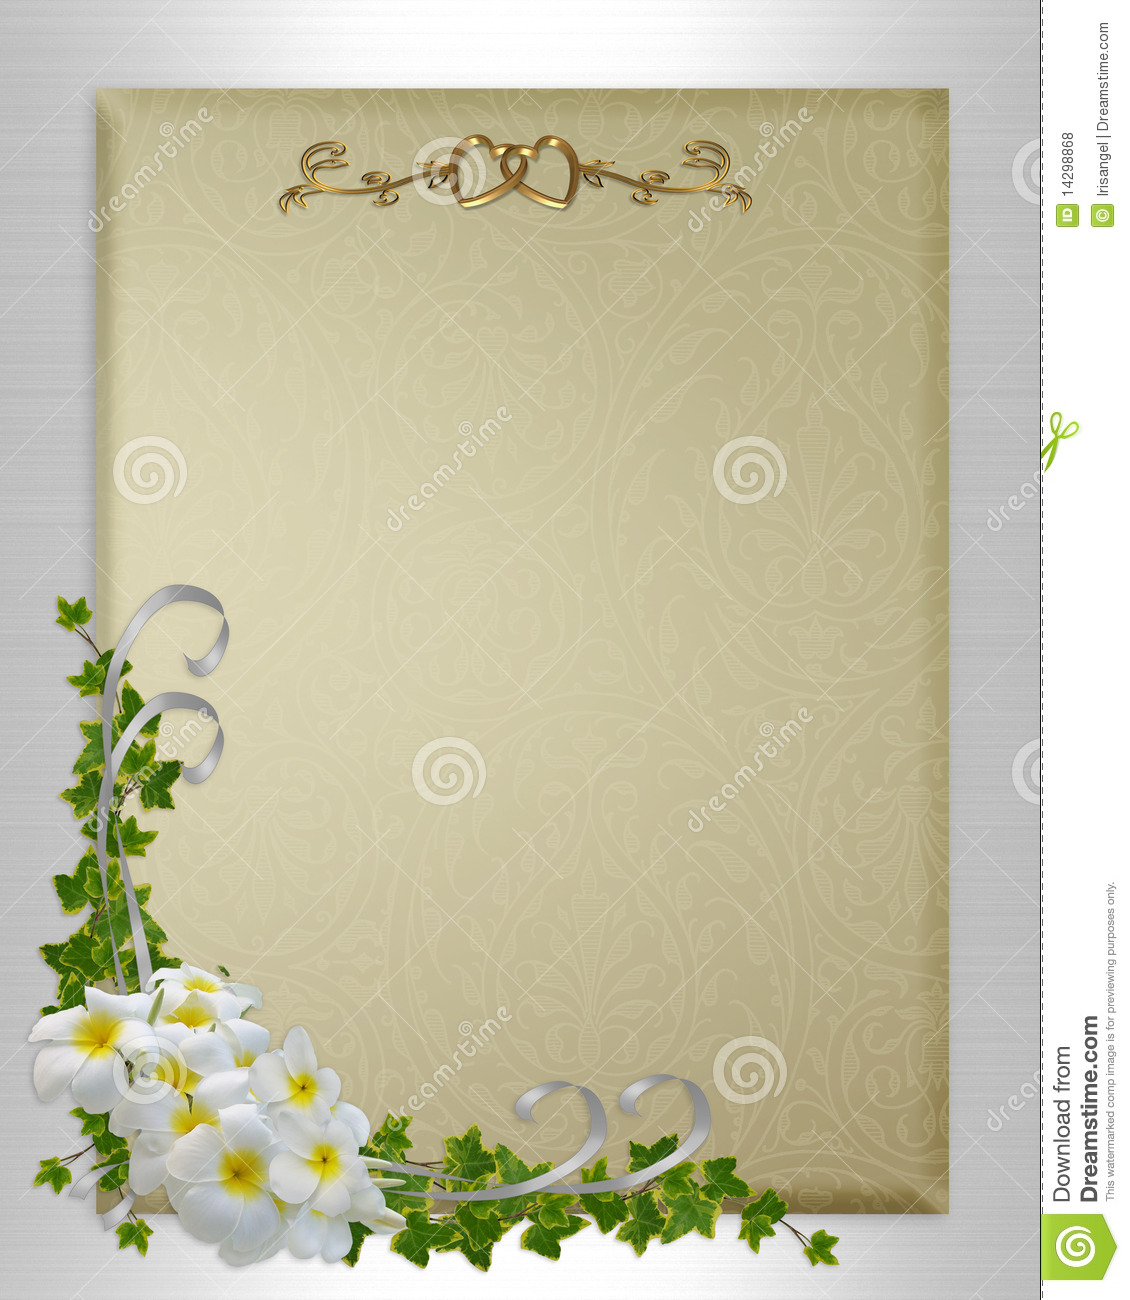 Wedding invitation plumeria and ivy stock illustration royalty free stock photo stopboris Image collections